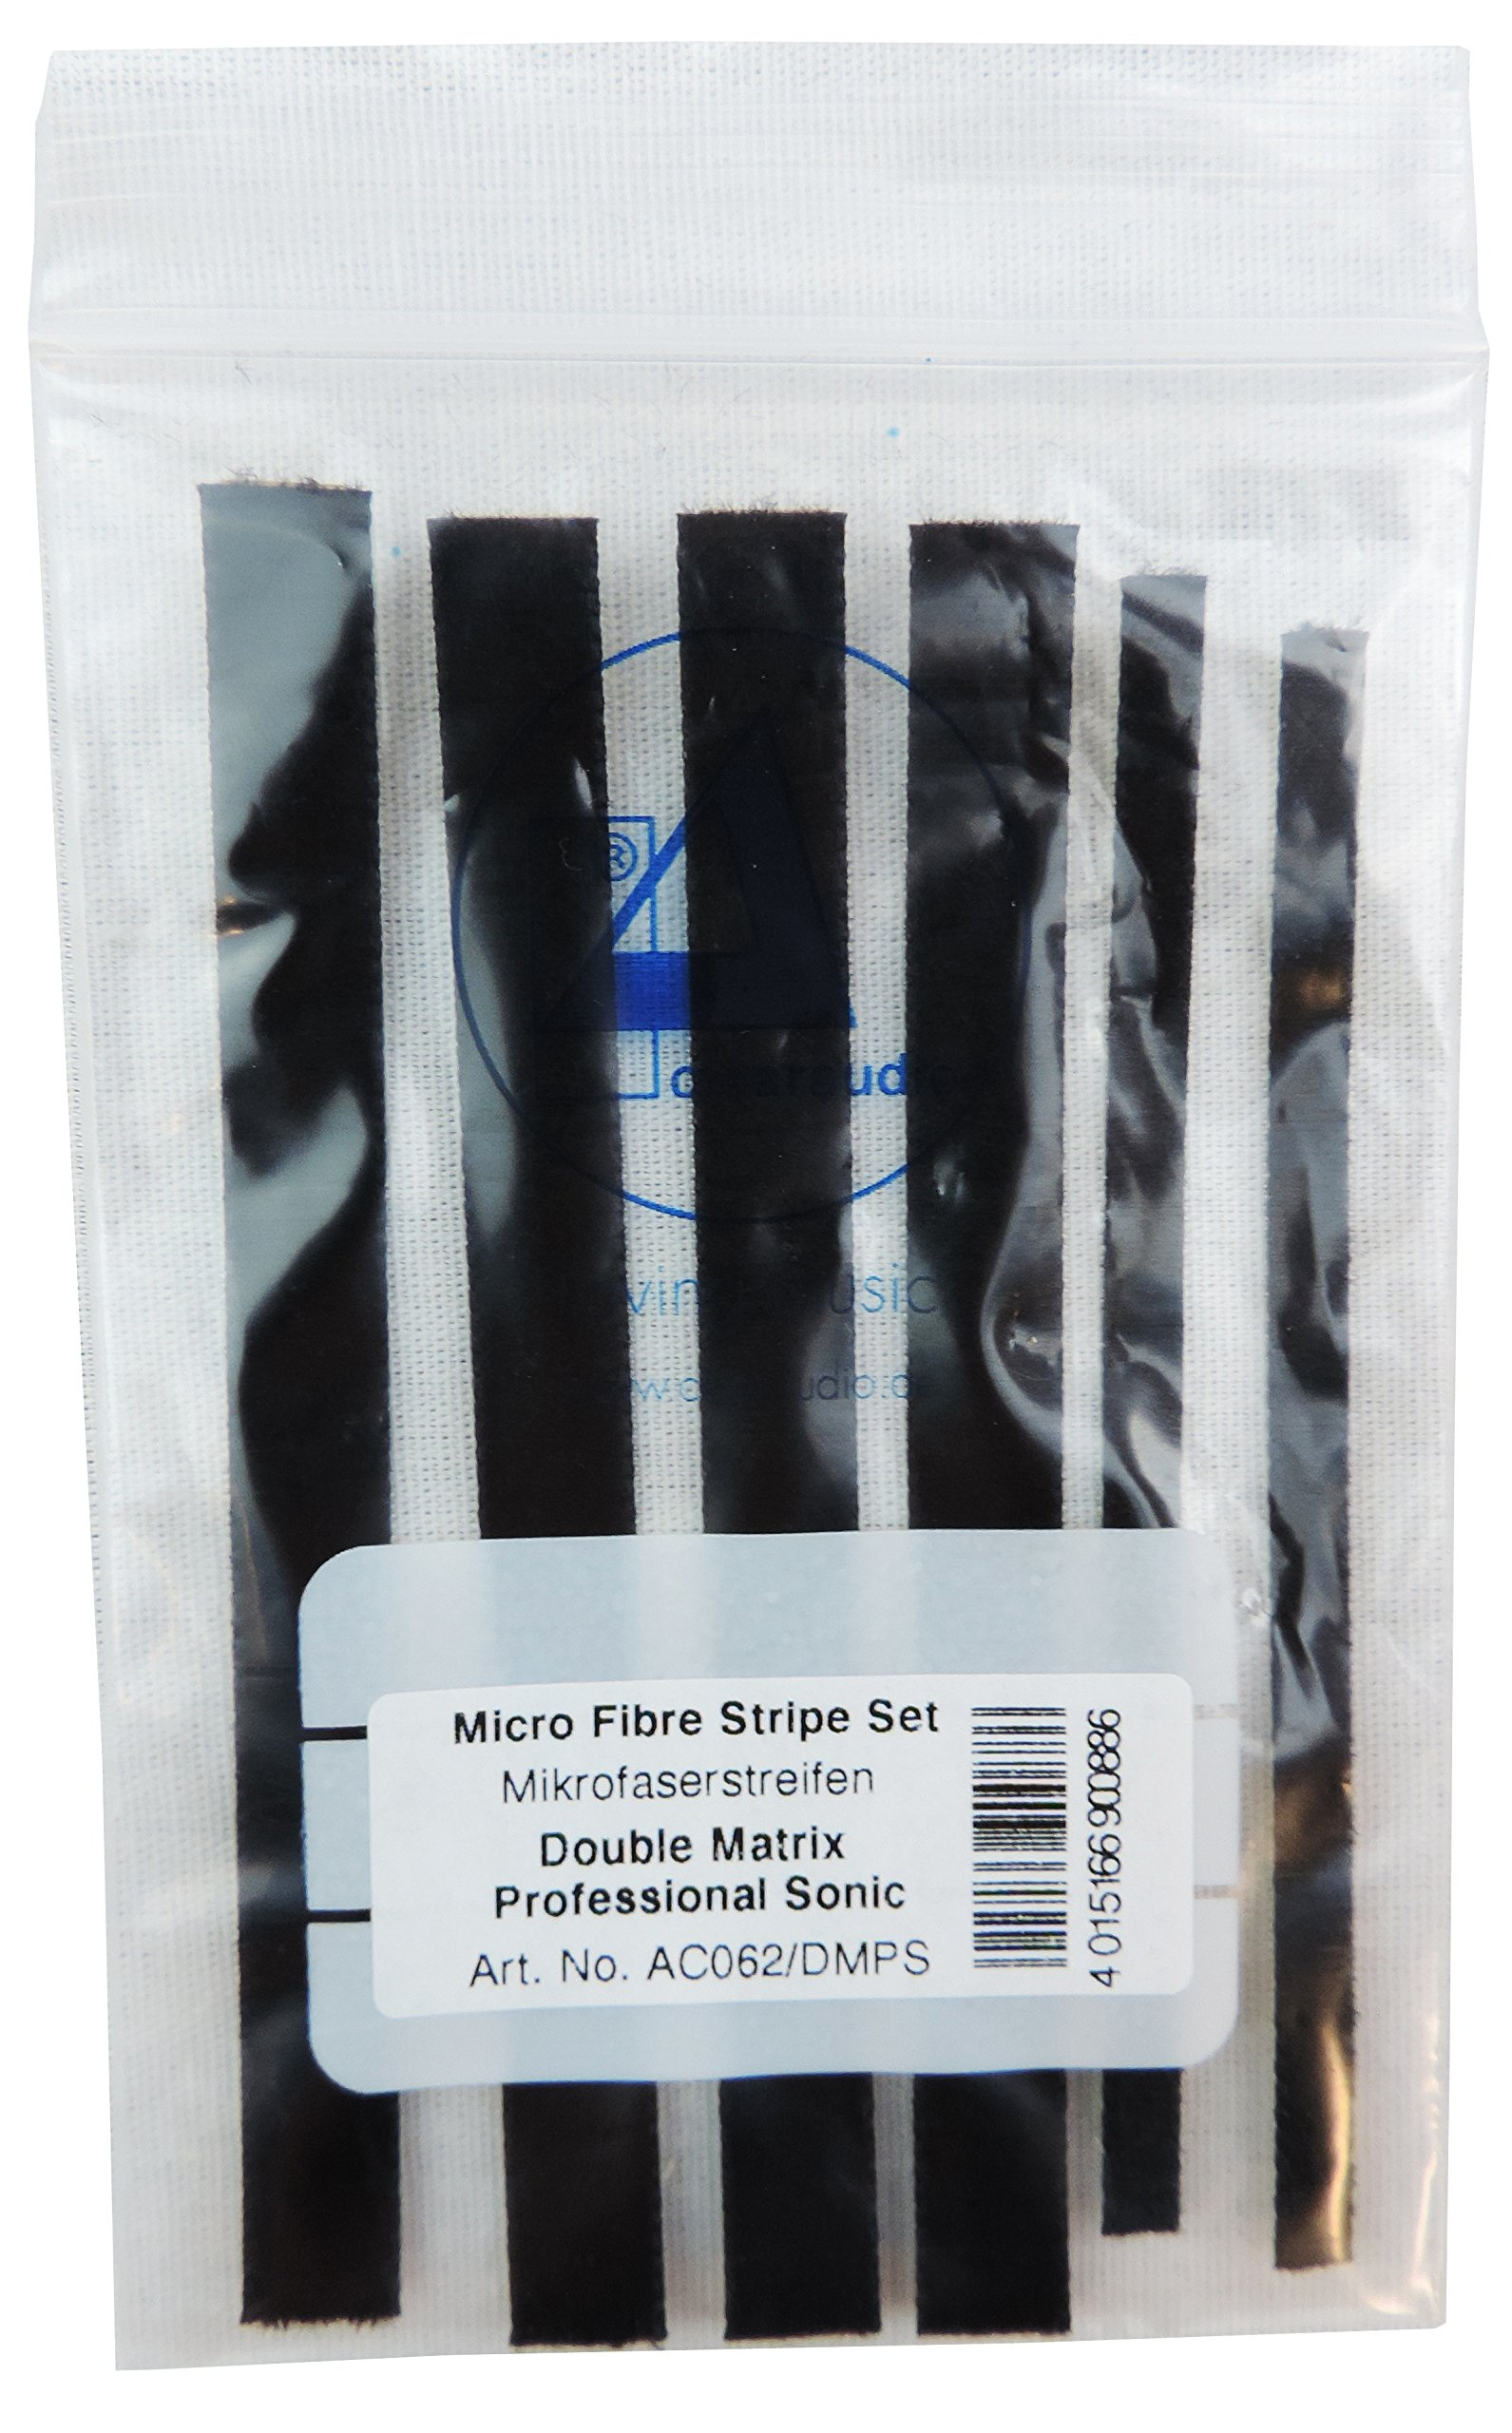 Clearaudio AC062/DMPS Microfiber Strips for Double Matrix Pro-Sonic LP Cleaner by Clearaudio